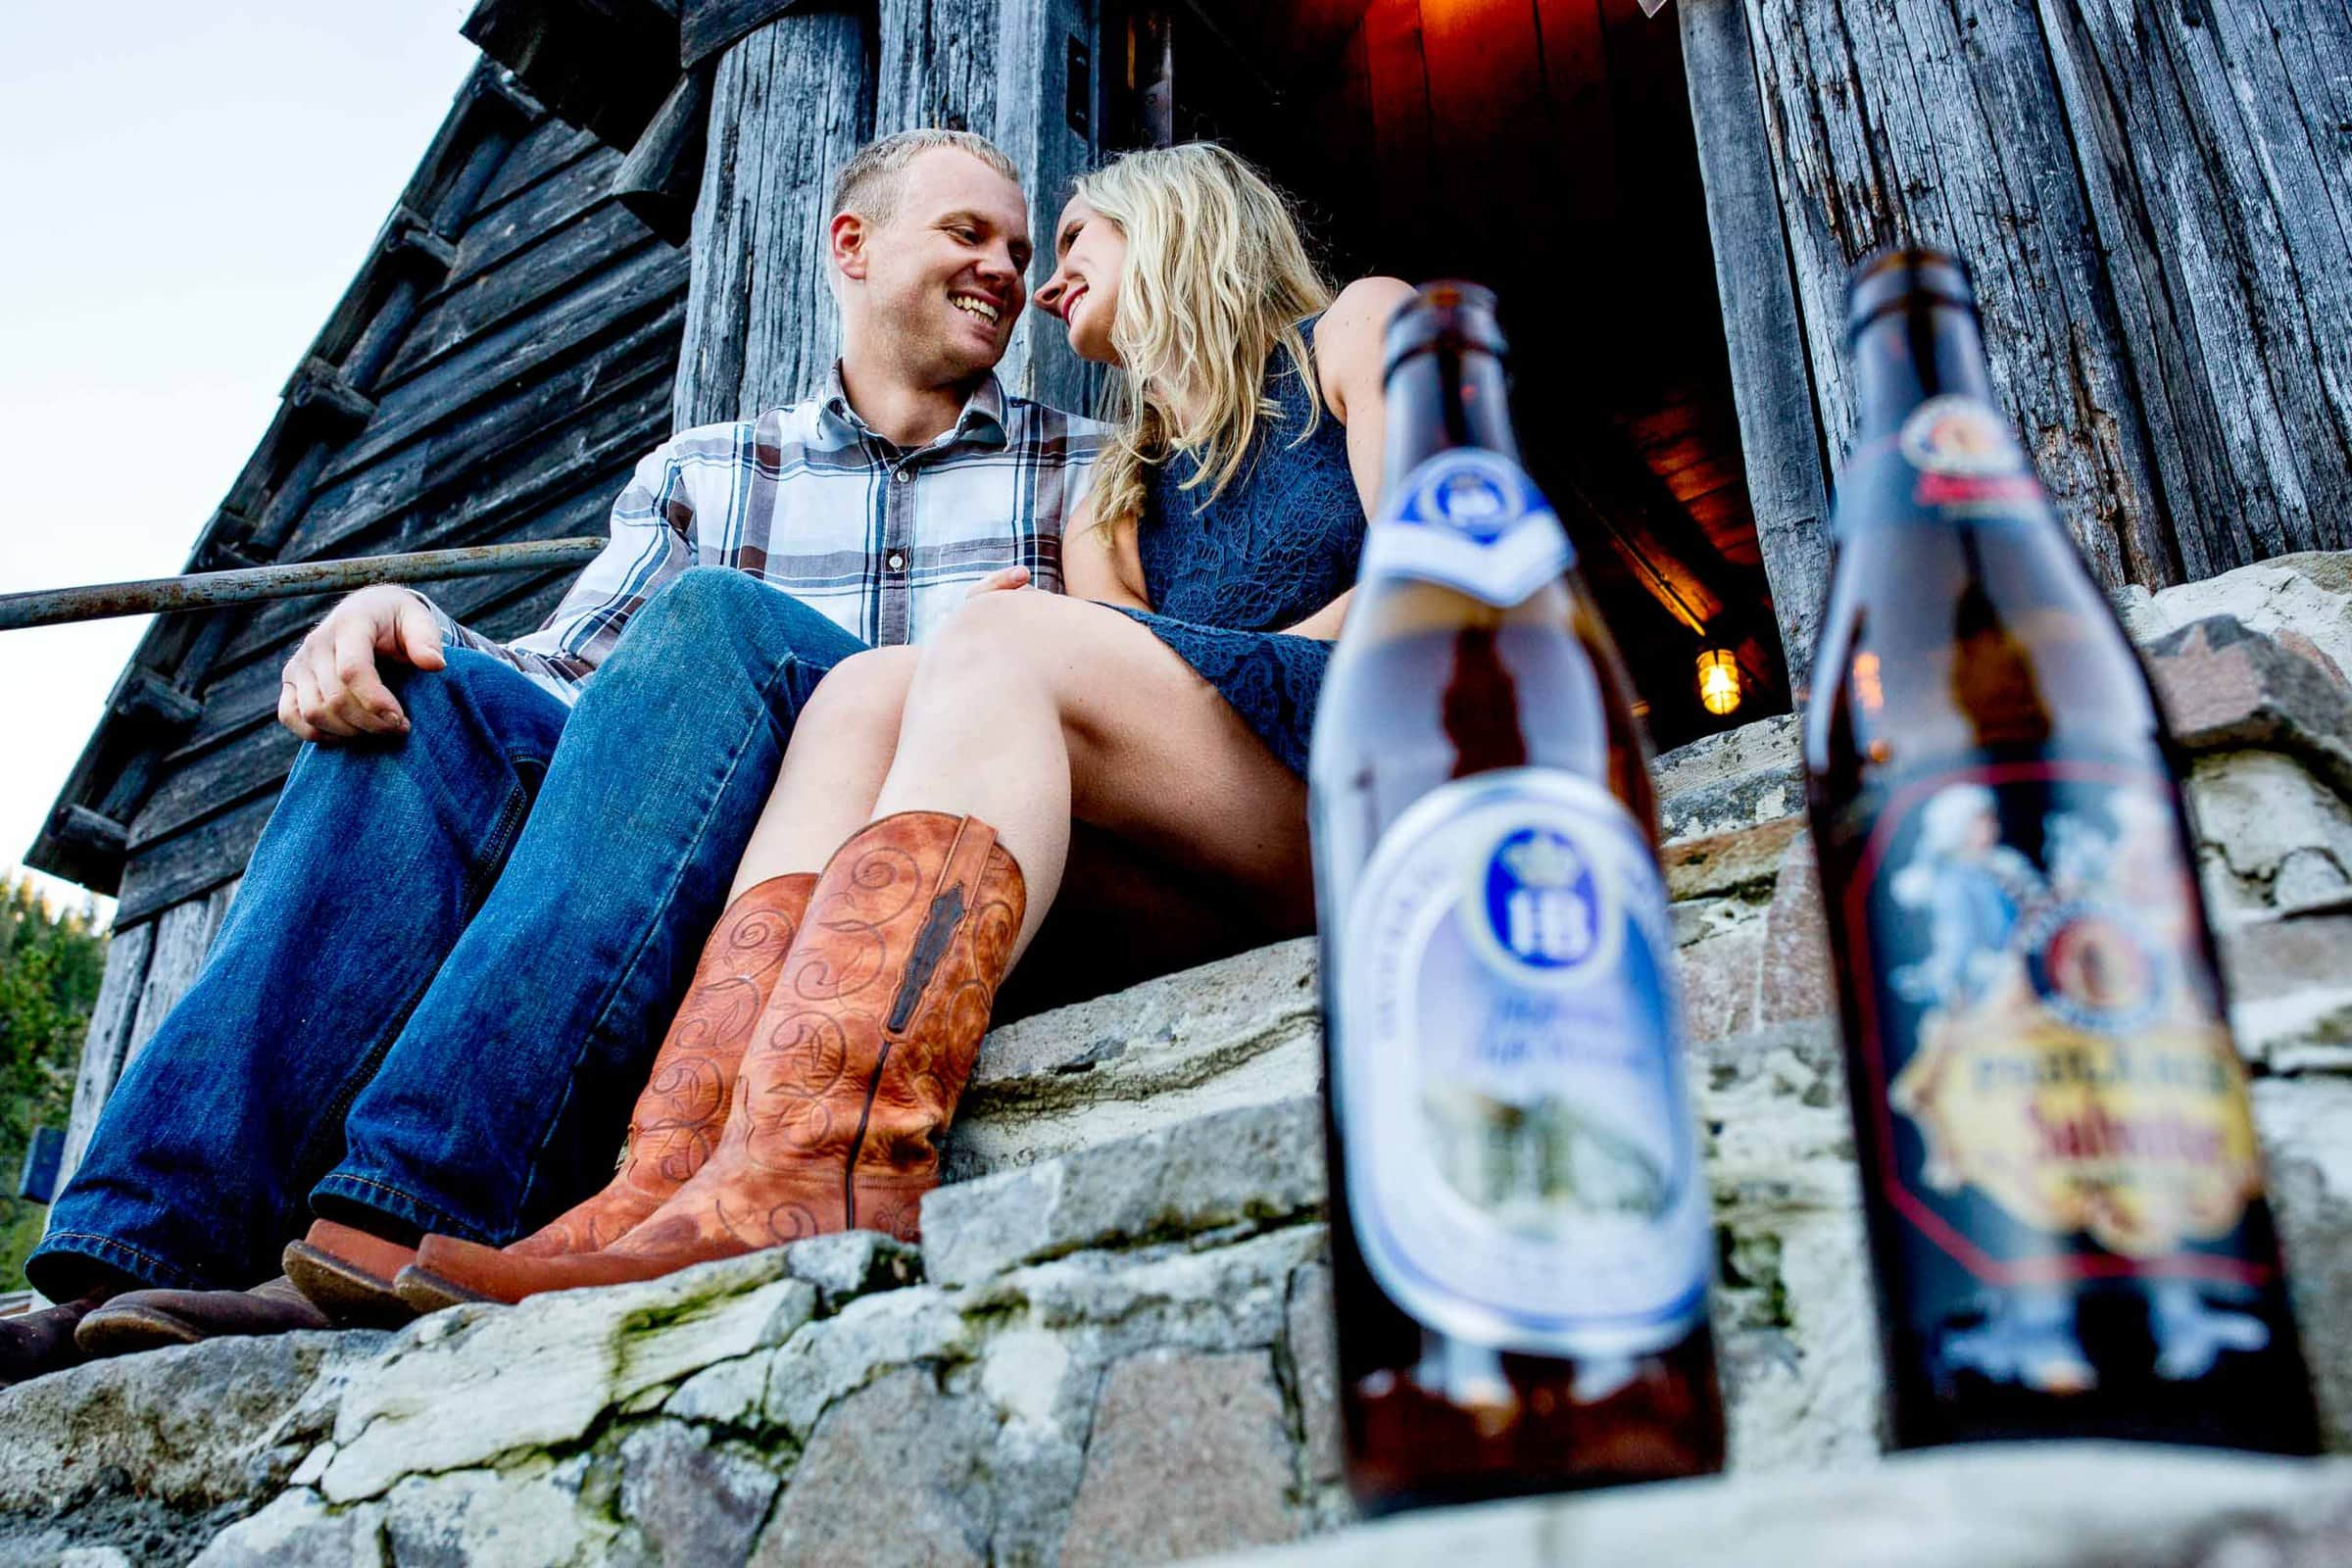 Two beers and a couple in love at a warming hut for their Mt Hood engagement photos